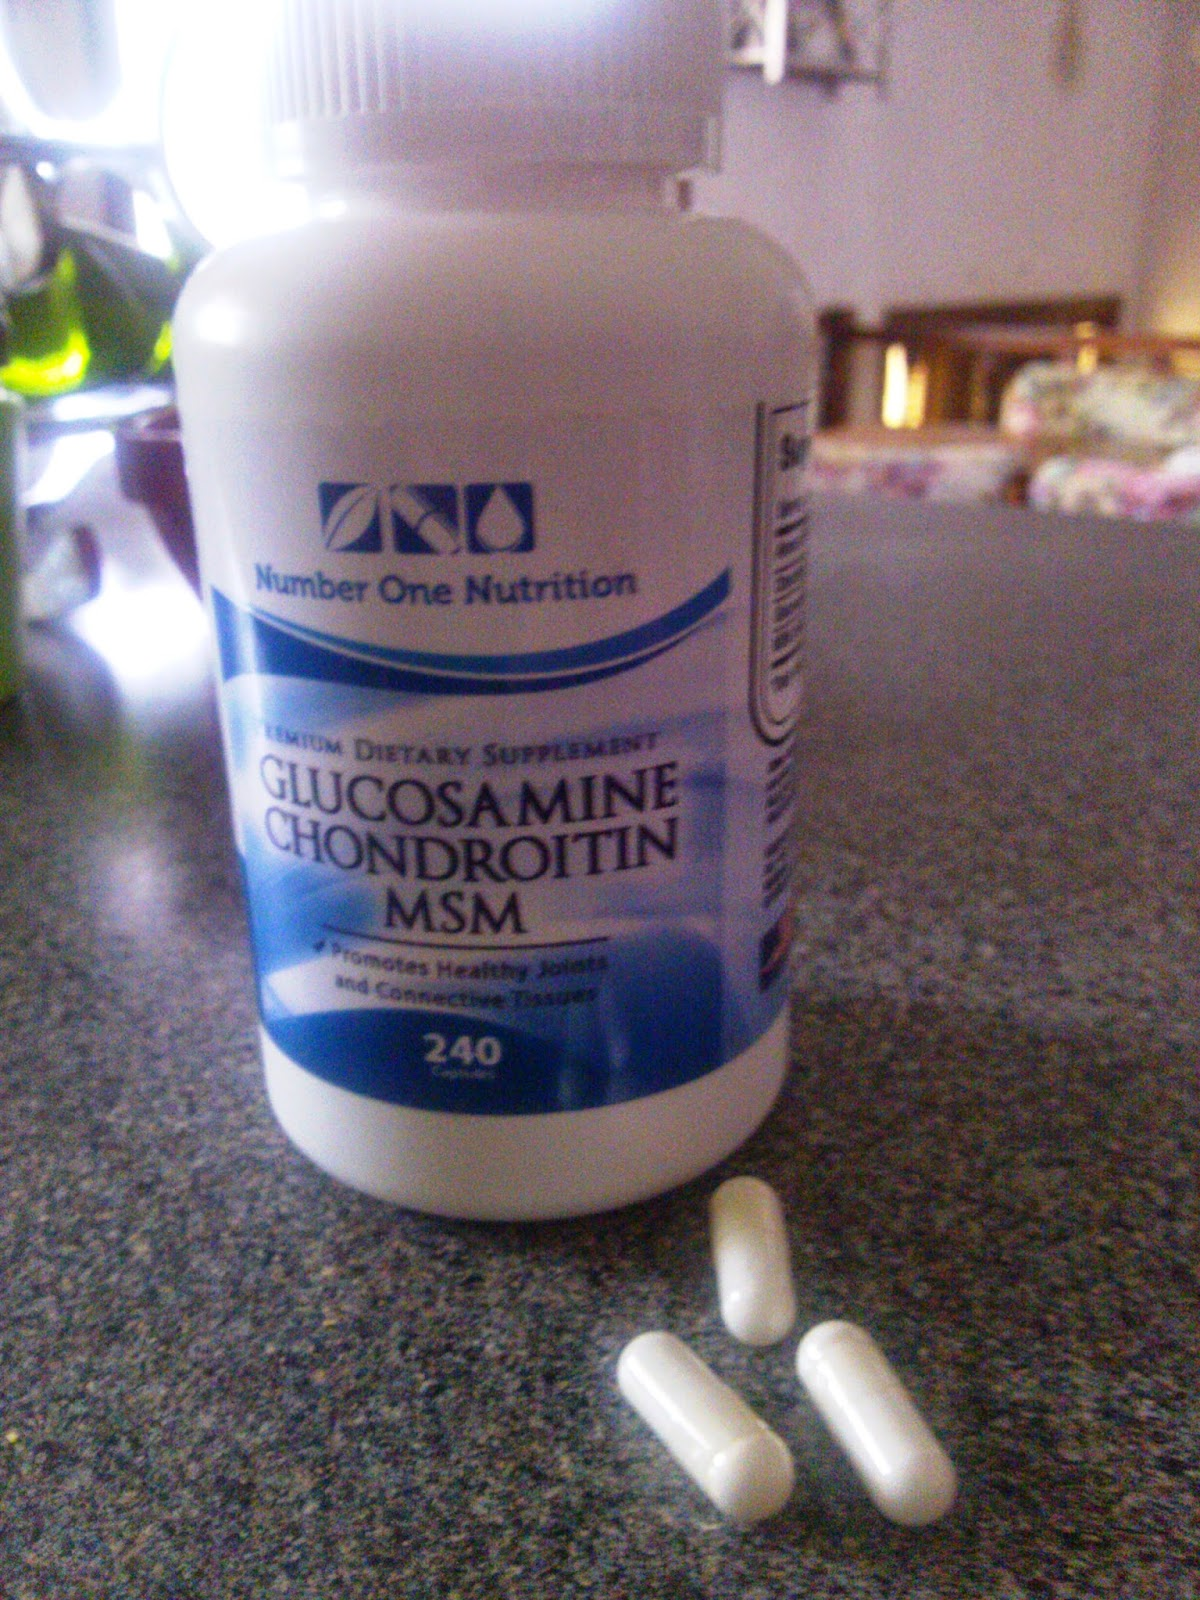 Number One Glucosamine Review